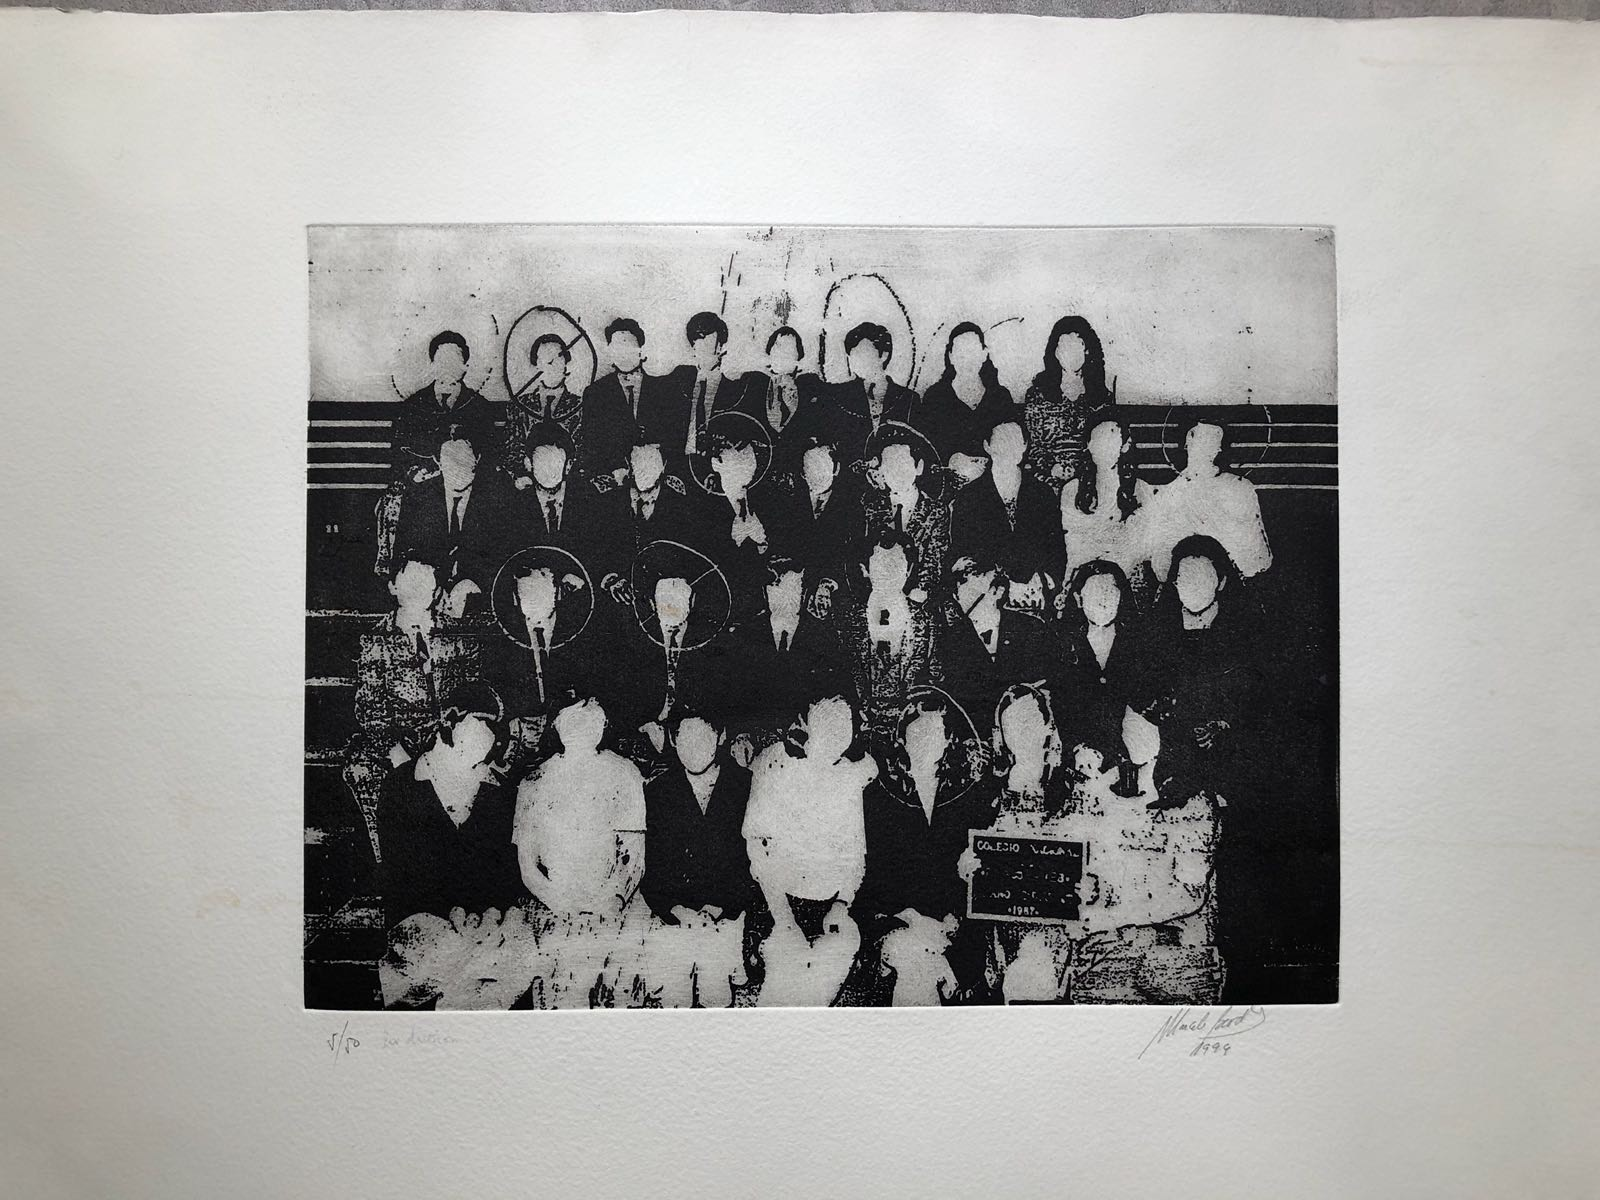 Good Memory, The class. 1997. Engraving. 48 x 63 cm. Ed. de 50.